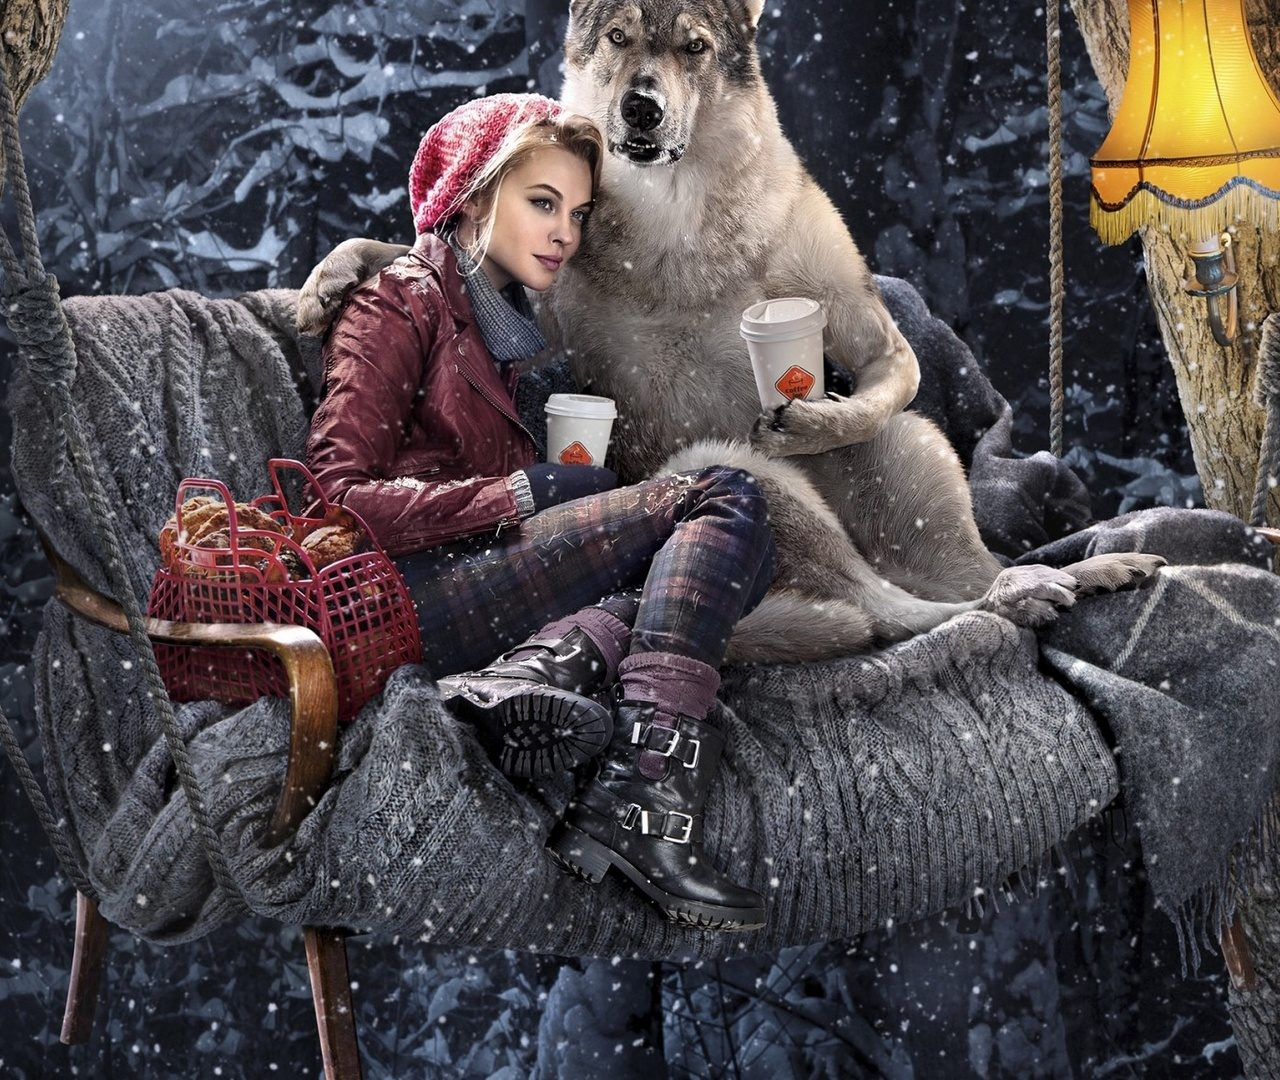 Red Riding Hood, Dog, Girl, Wolf, Forest, Winter